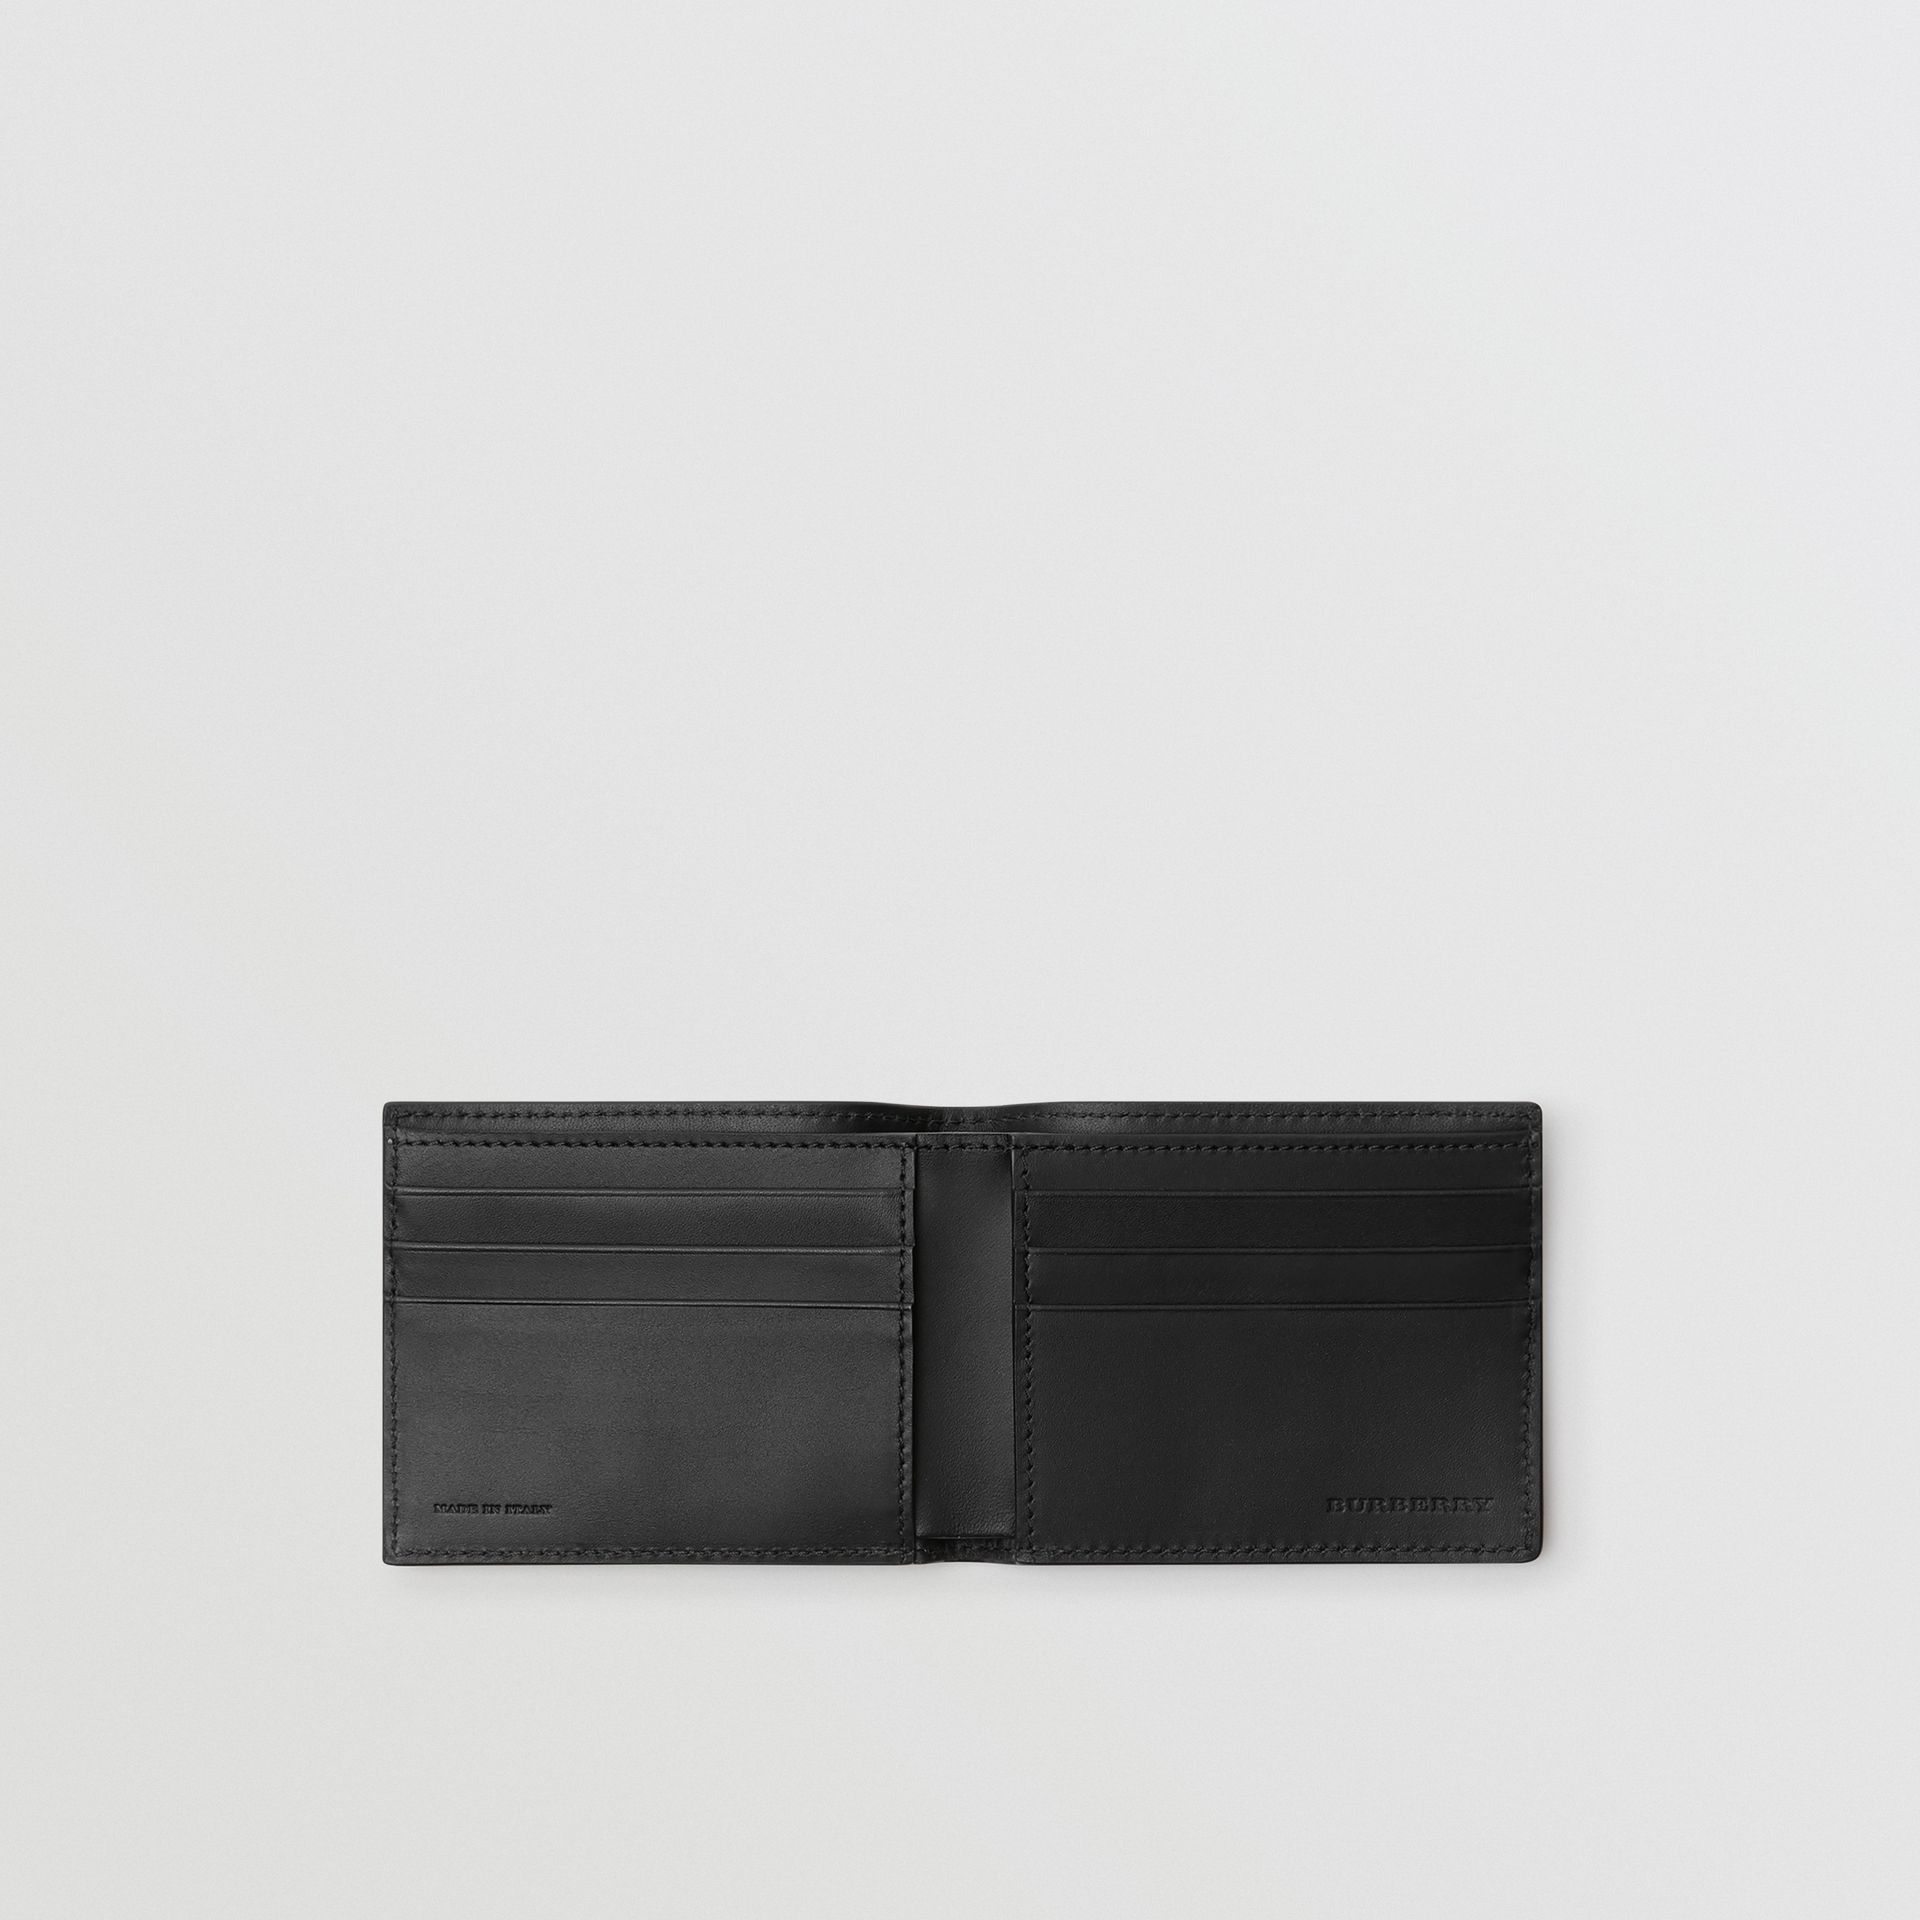 Grainy Leather Bifold Wallet in Black - Men | Burberry United Kingdom - gallery image 3